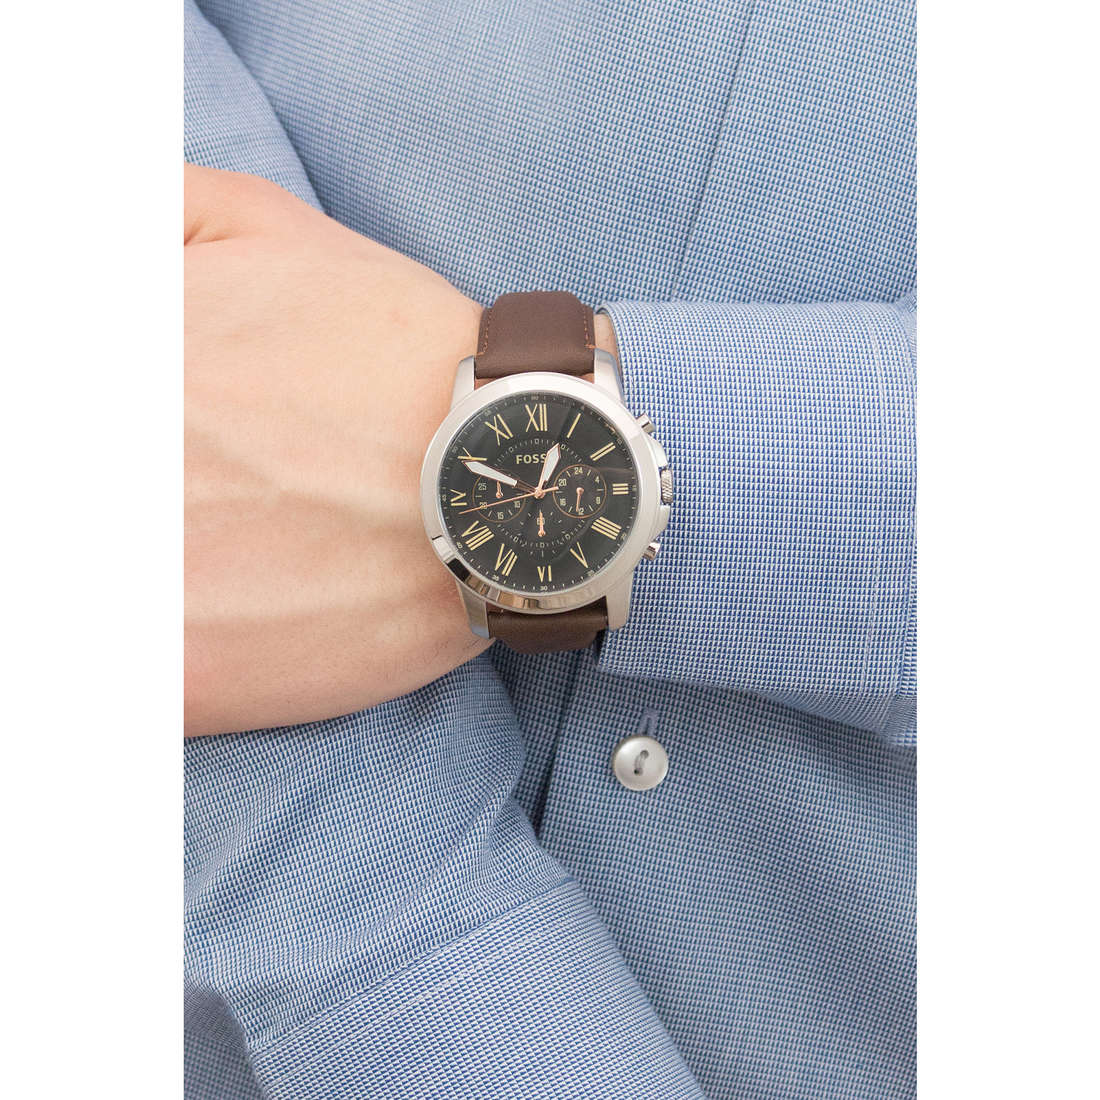 Fossil chronographes homme FS4813 indosso